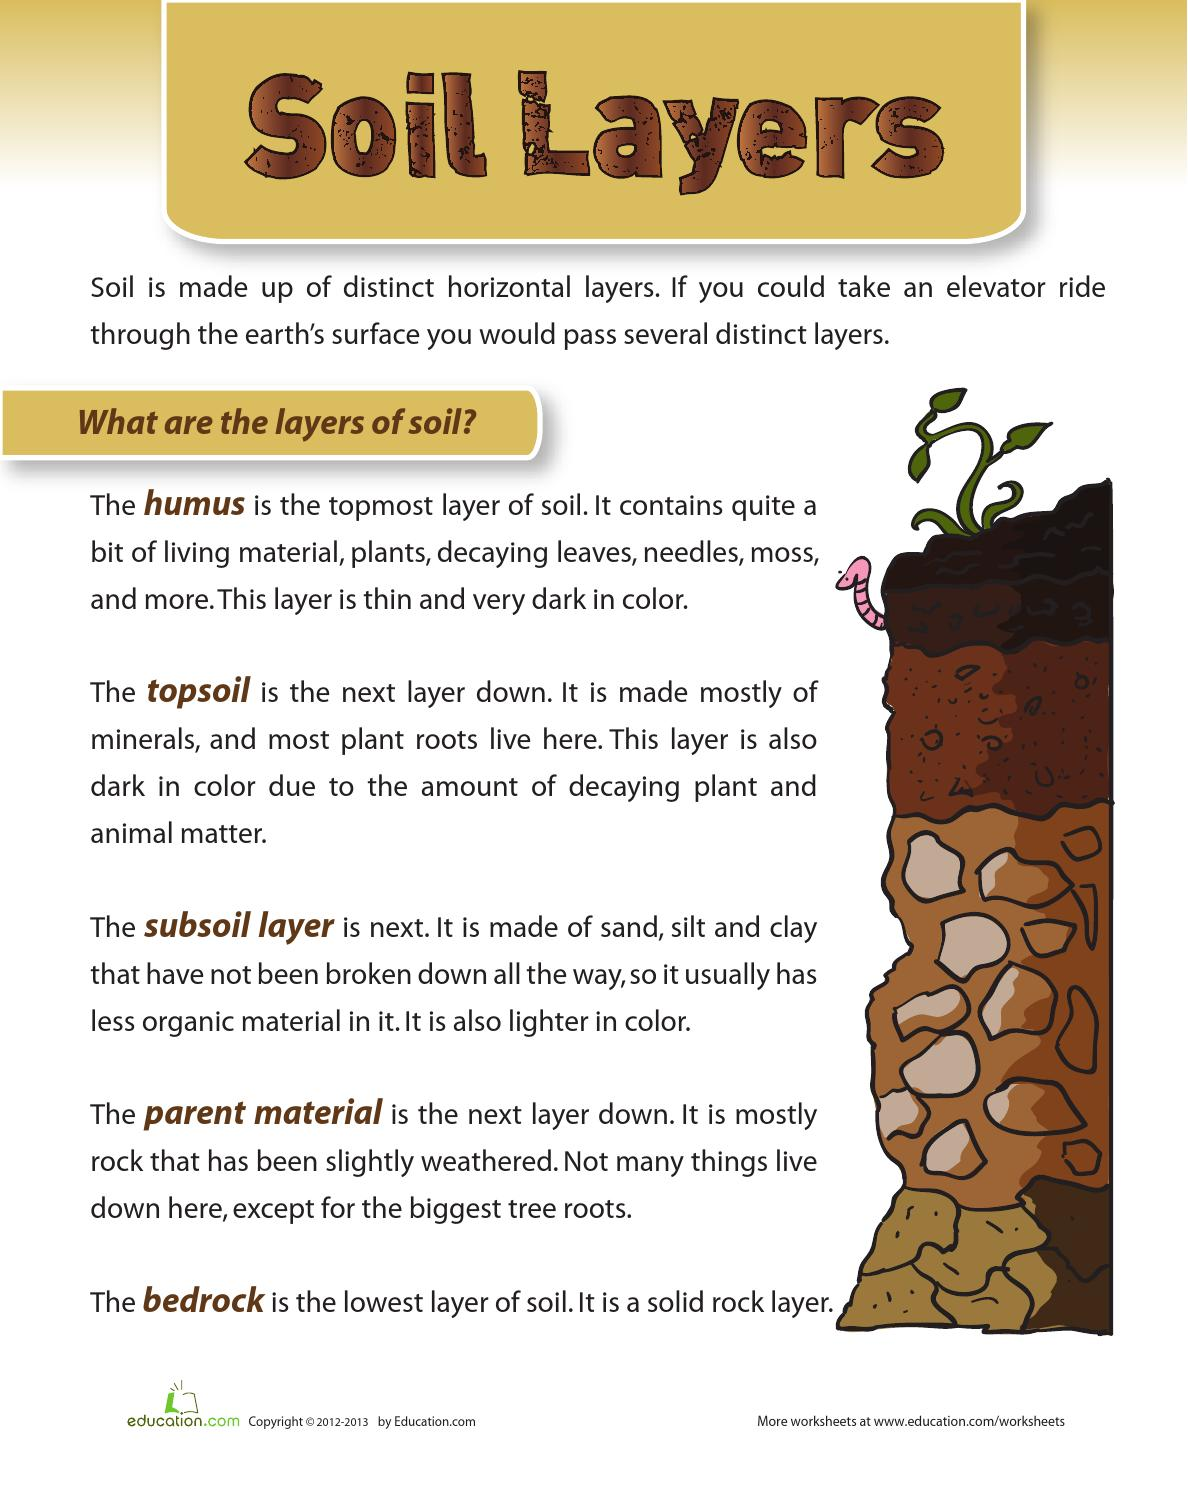 Soil layers by paul benitez issuu for What are the different layers of soil